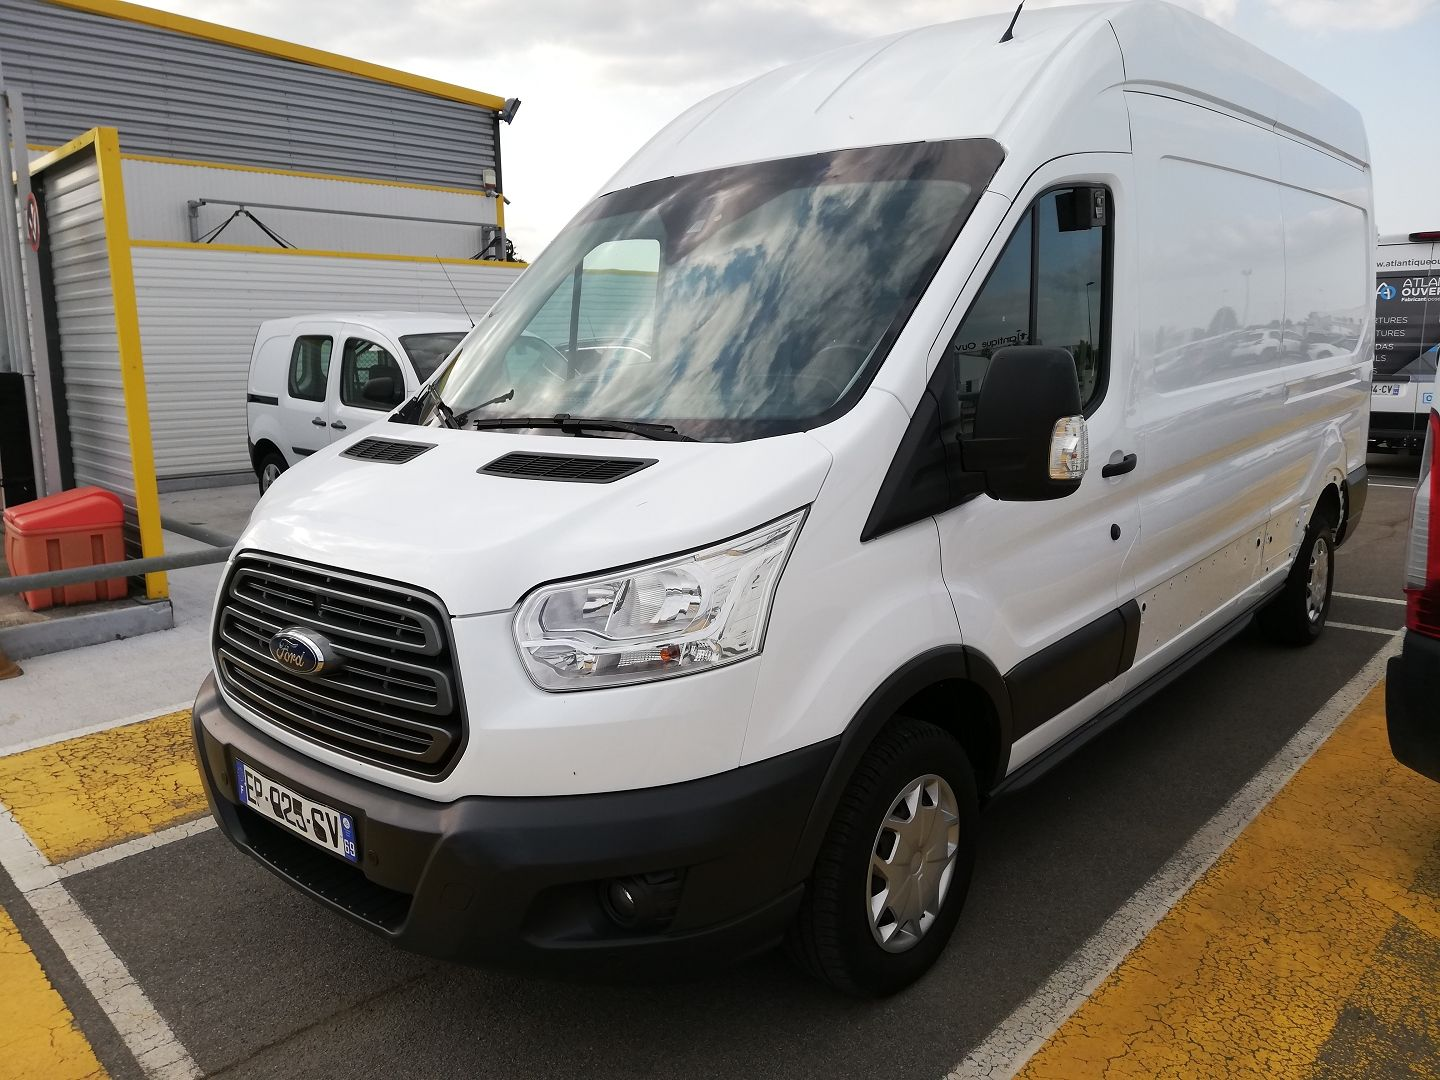 Achat utilitaire – FORD TRANSIT 2T FG 43309